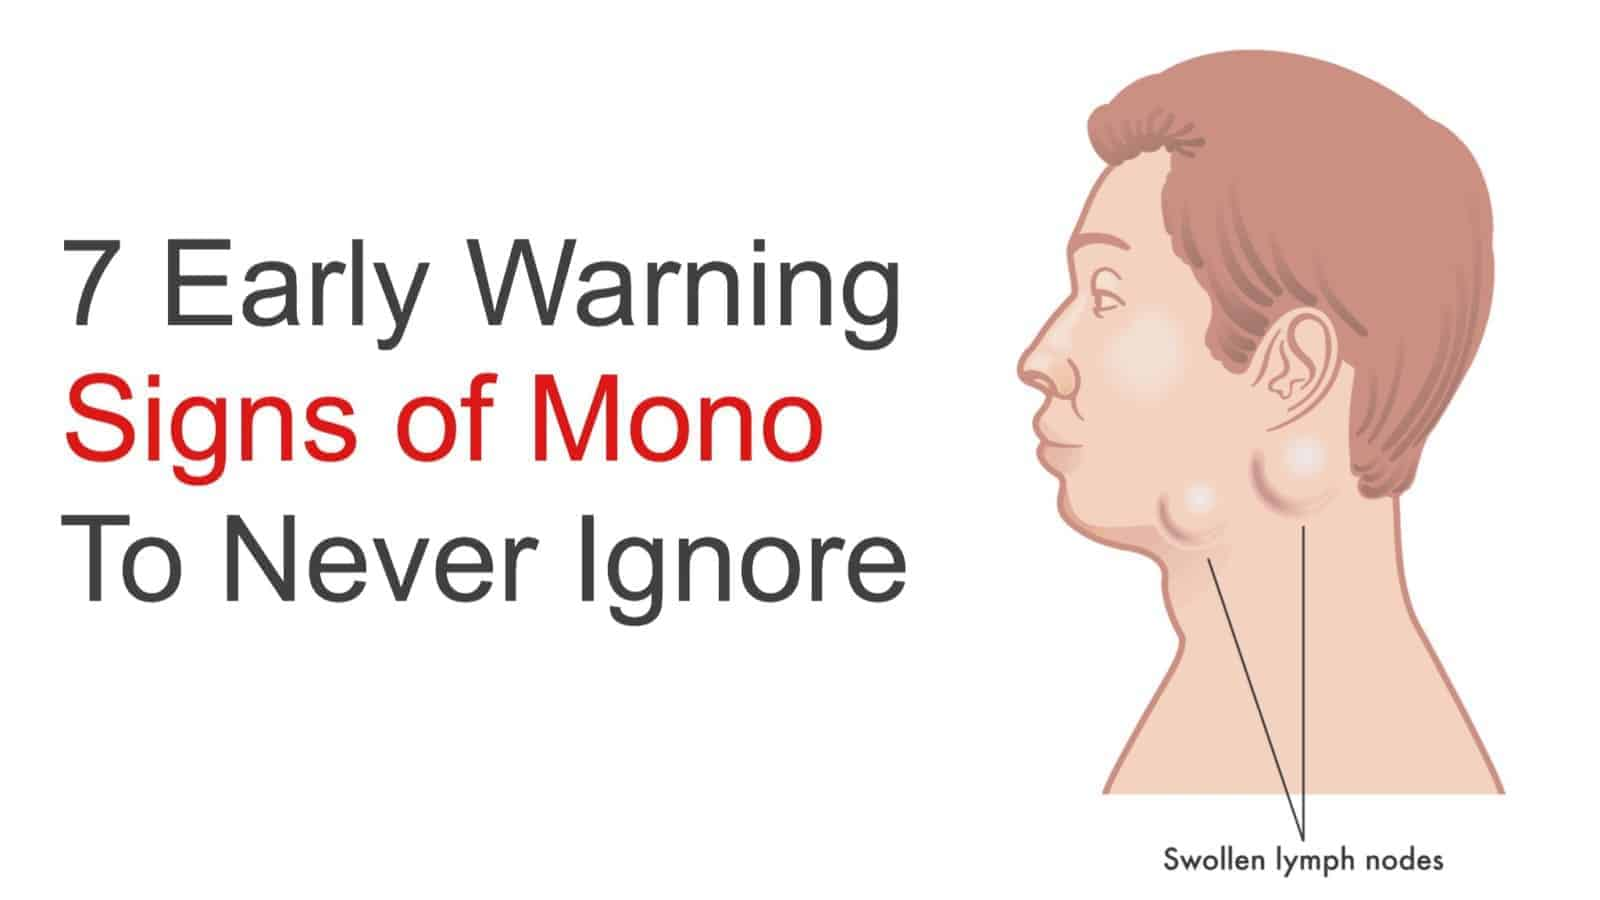 Mononucleosis in adults can not